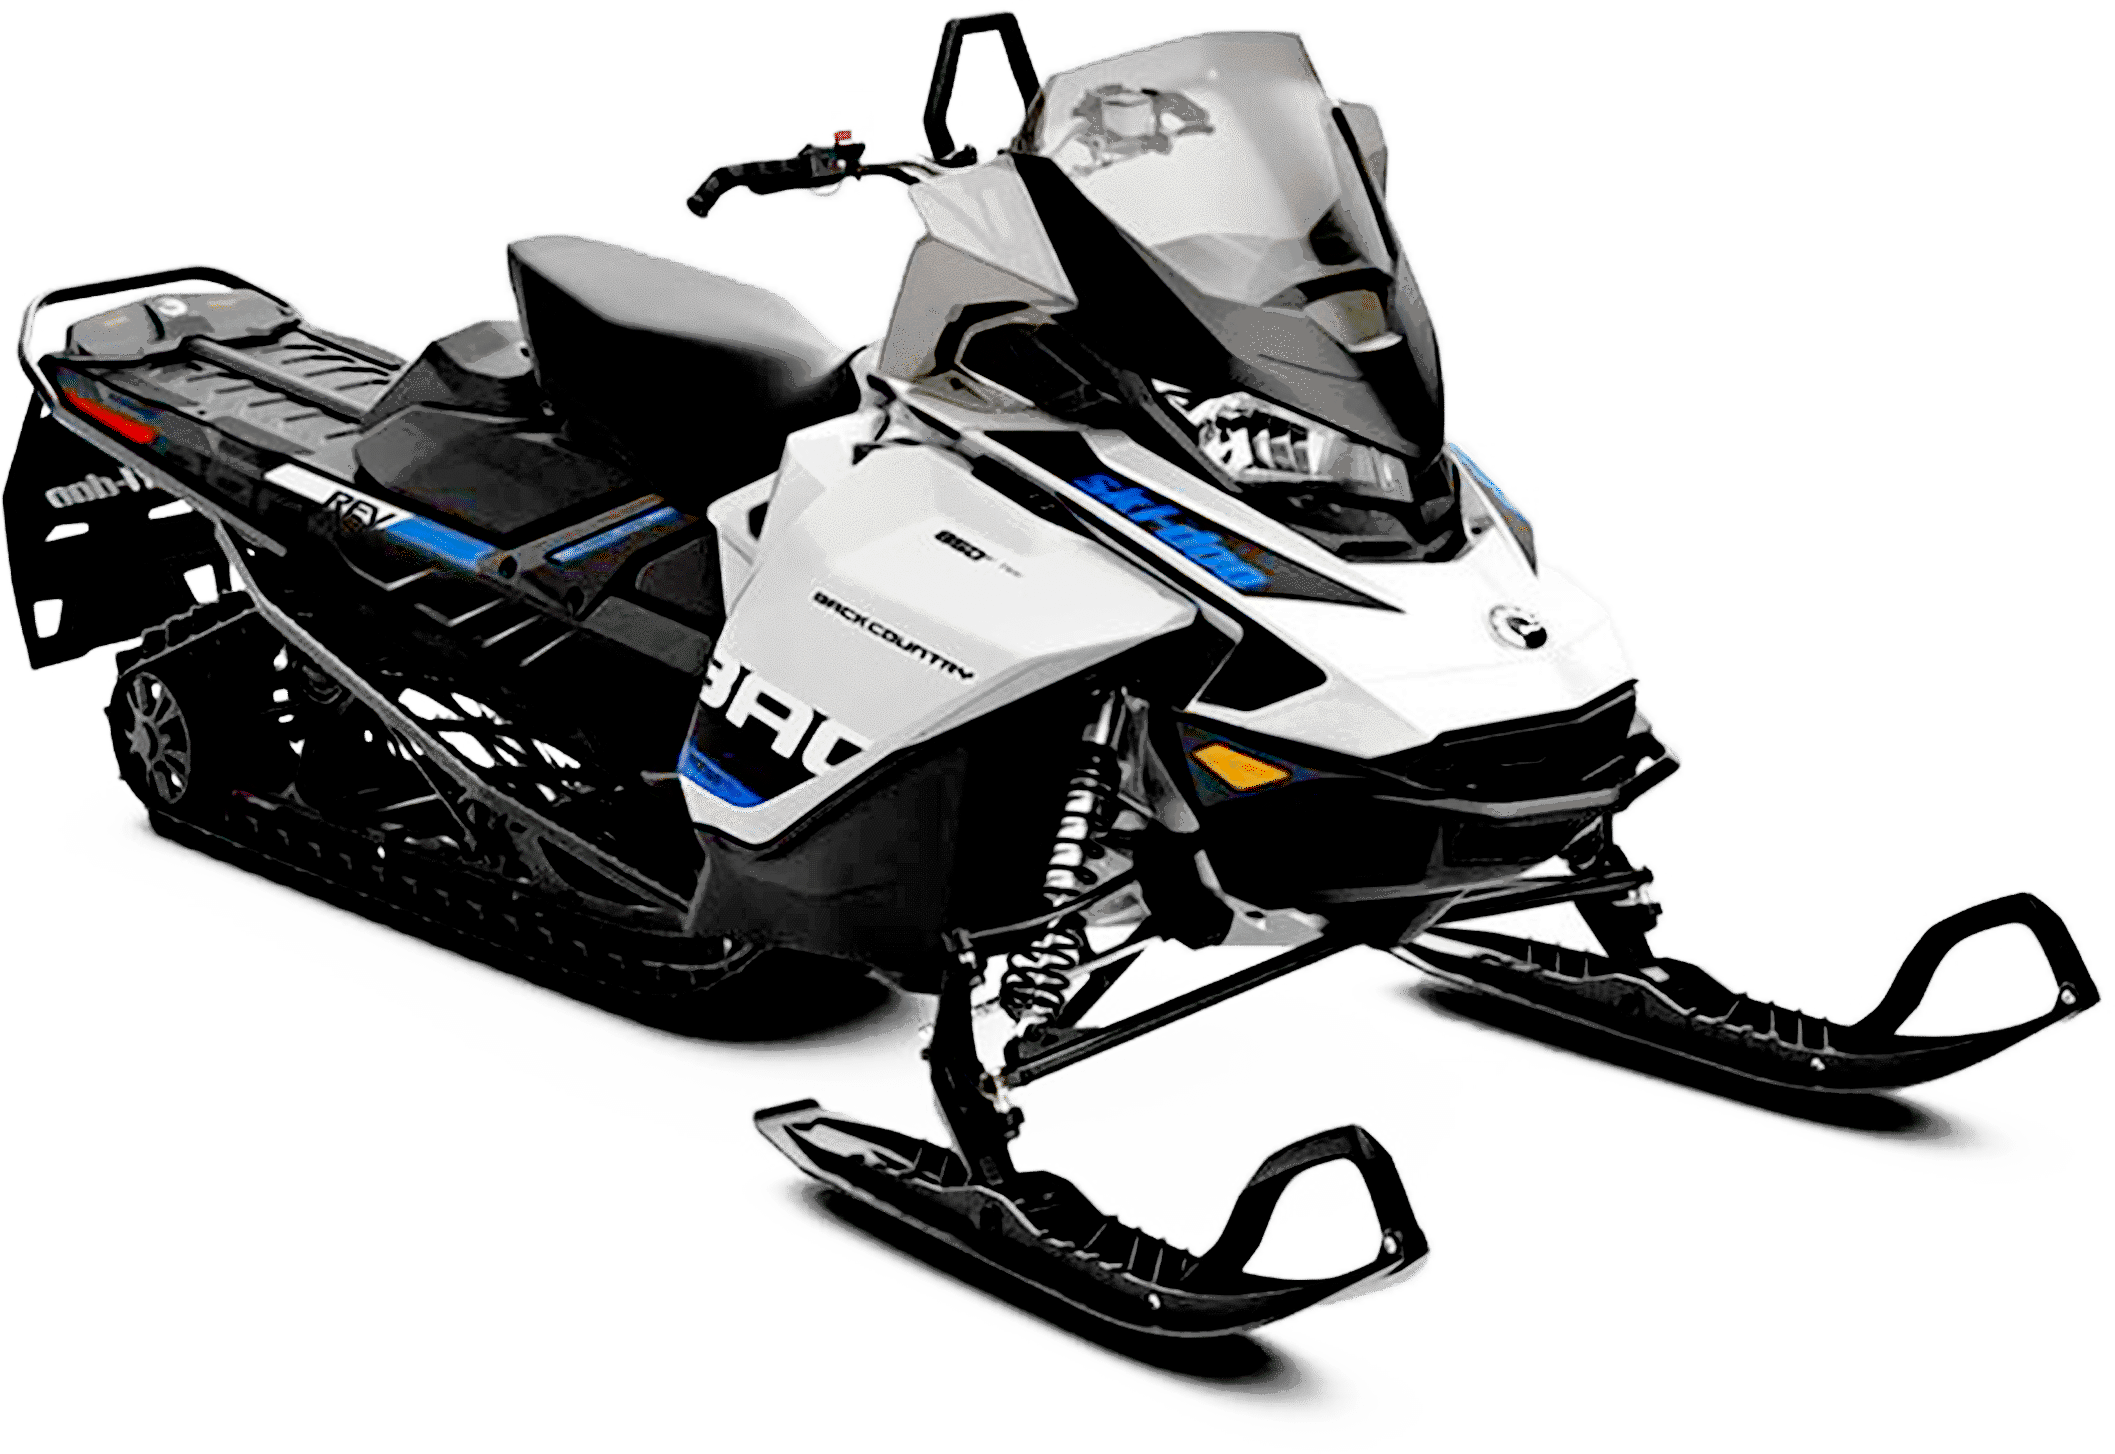 Ski-Doo Backcountry 2